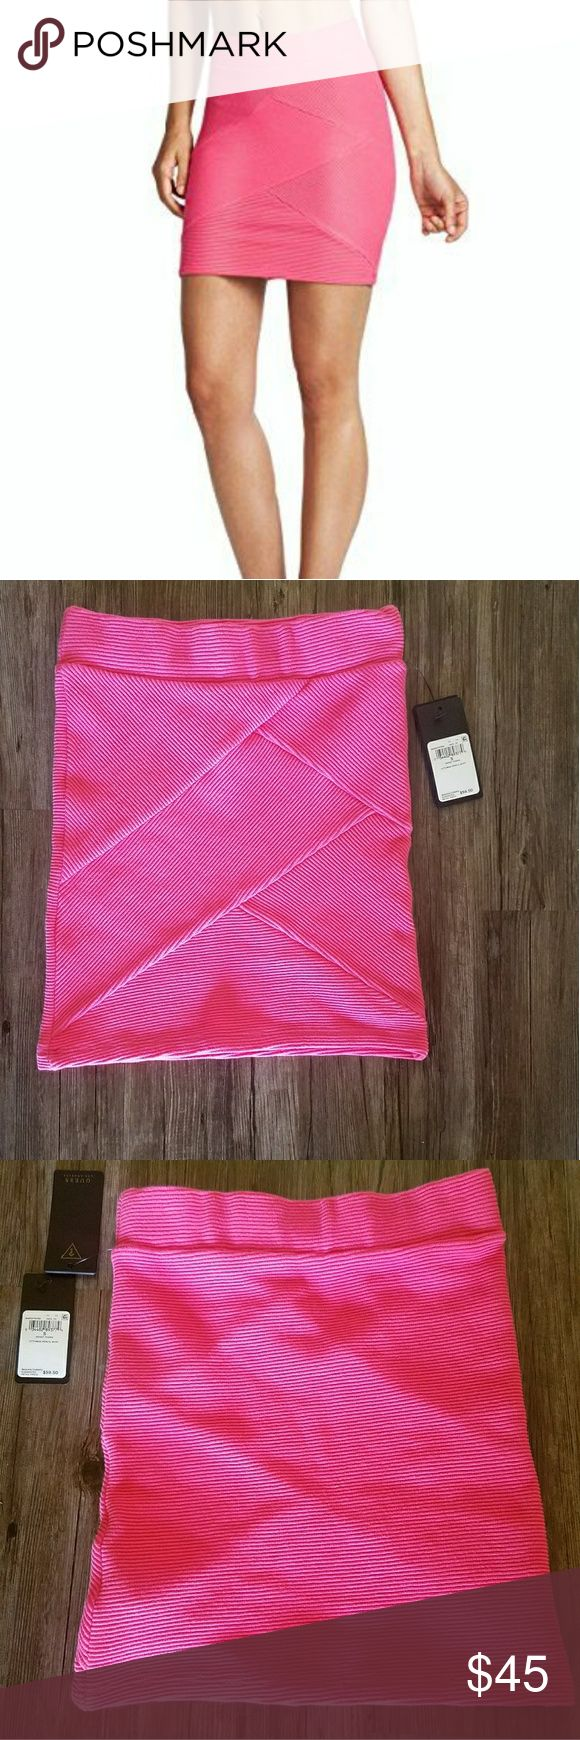 "NWT Guess Sweet Thang Pencil Skirt Size S NWT Guess Sweet Thang Ottoman pencil skirt. Ribbed texture throughout. Elastic waist. 98 % cotton 2% spandex. Size S. New condition. From a smoke free pet free home.  Approx measurements ~  Waist 12""  Length 15"" Guess Skirts Pencil"